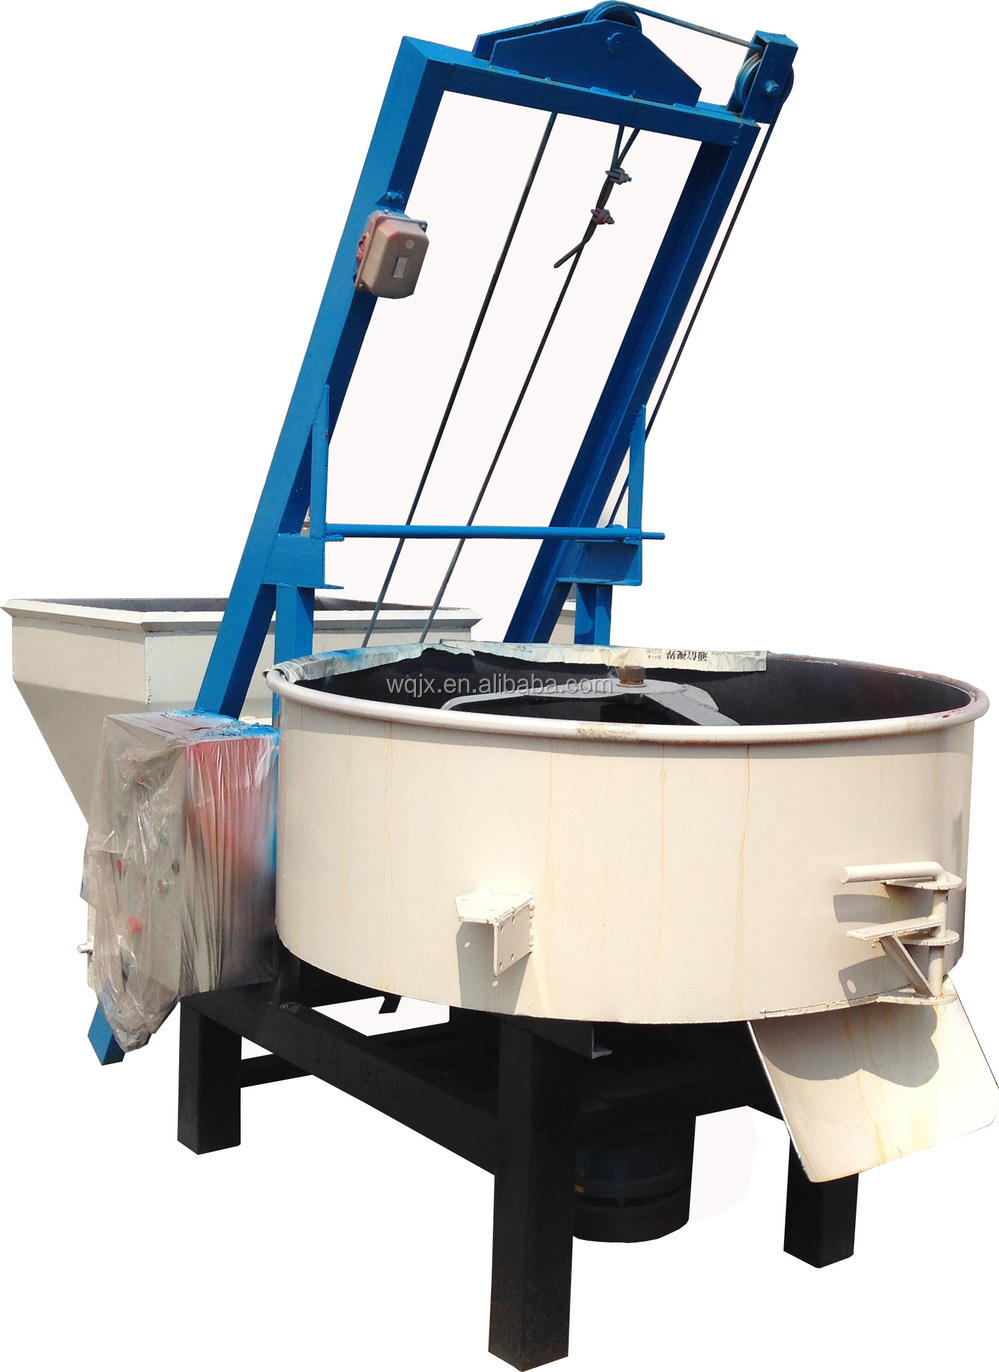 Wanqi terrazzo floor tile making machinehydraulic press for wanqi terrazzo floor tile making machinehydraulic press for artificial stone machineterrazzo tile dailygadgetfo Image collections